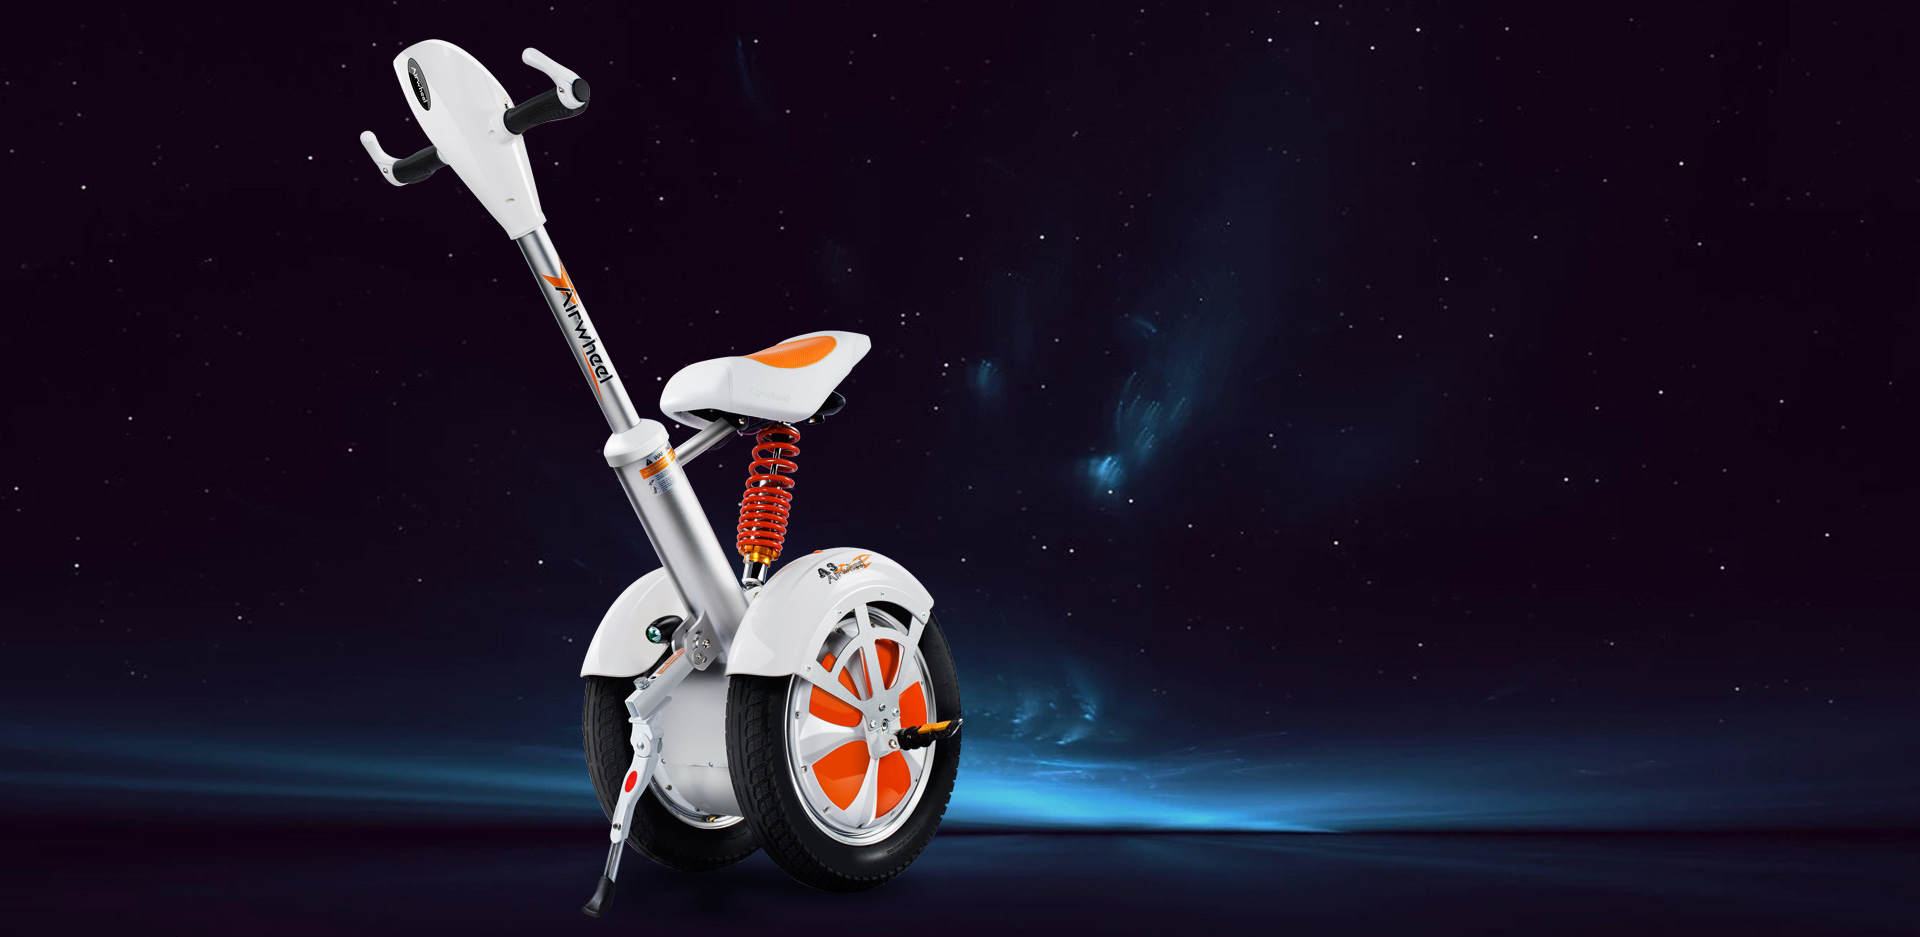 A3 electric scooter